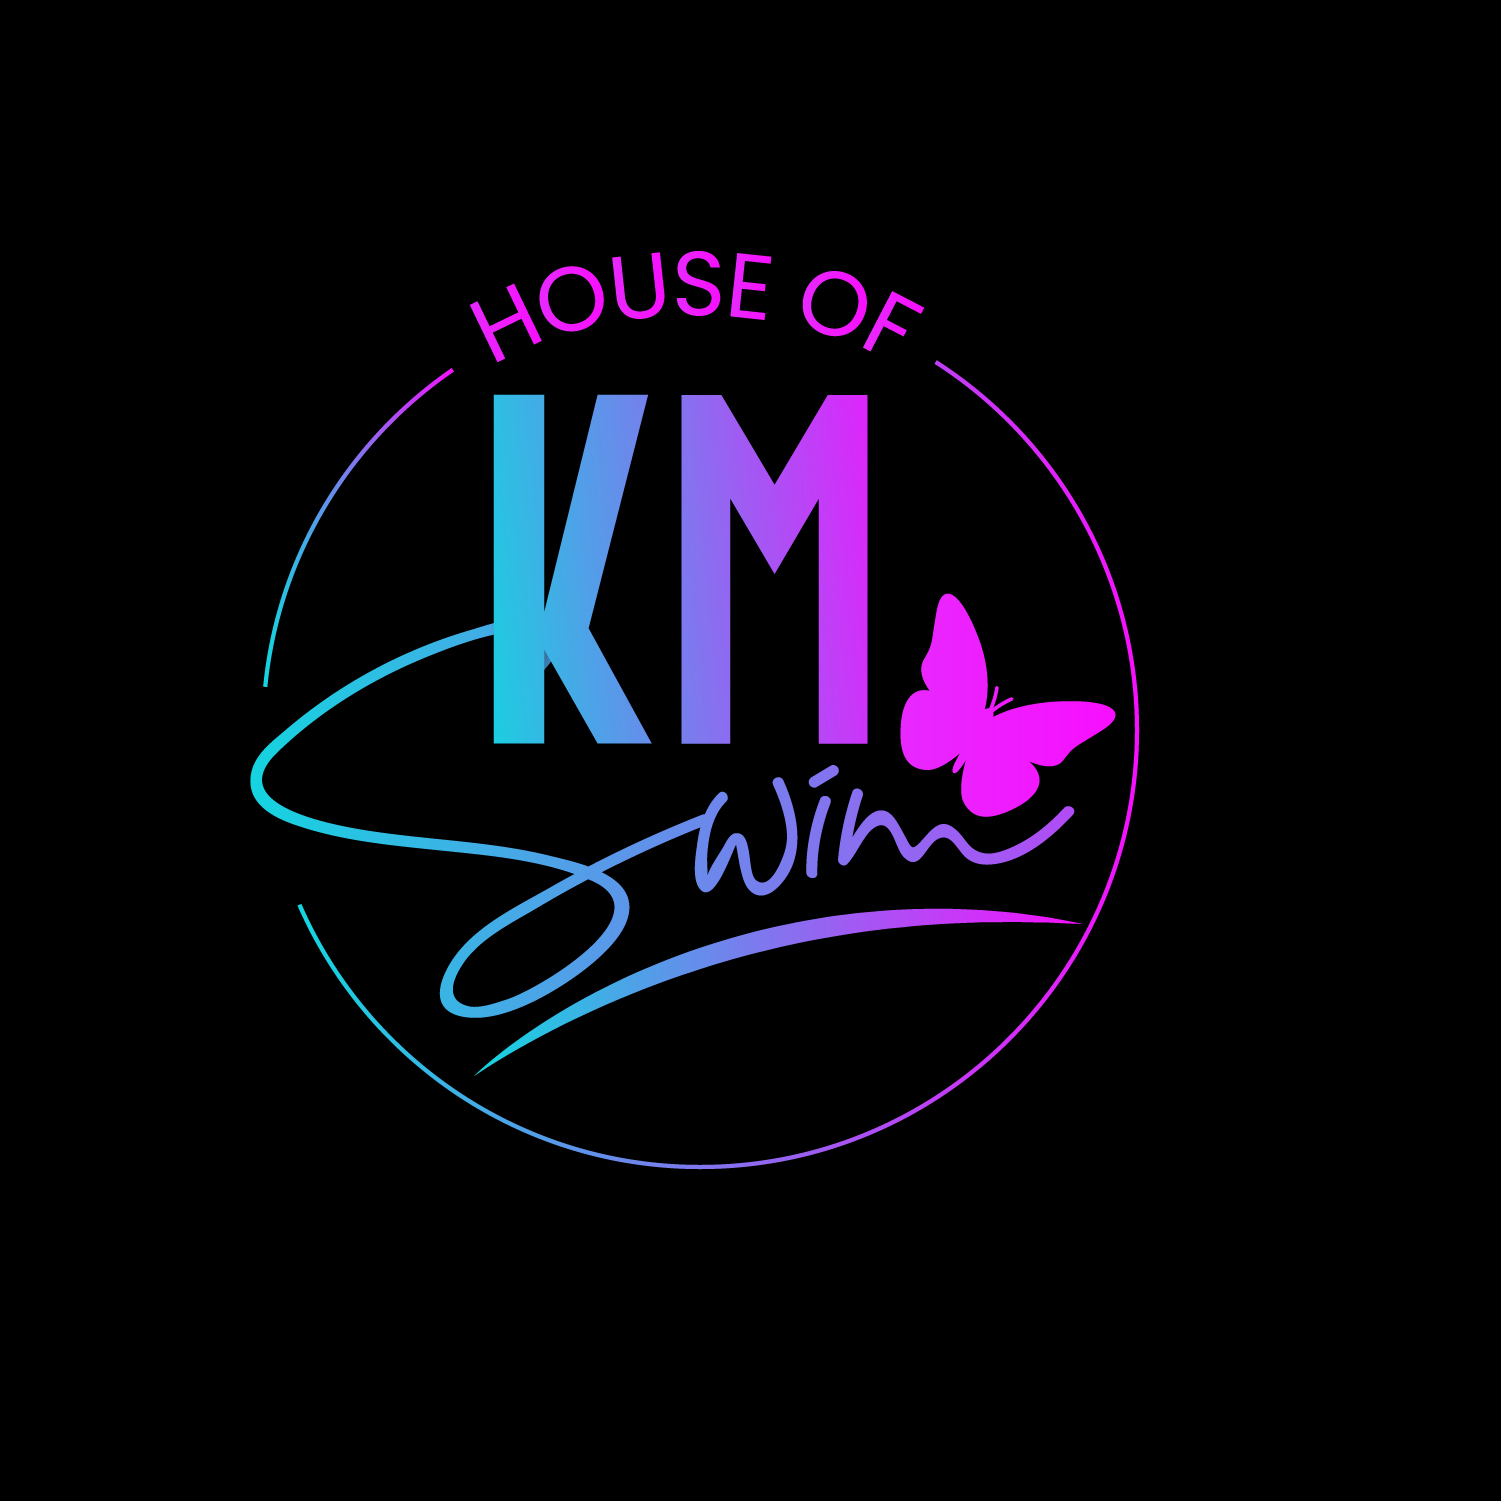 House of KM